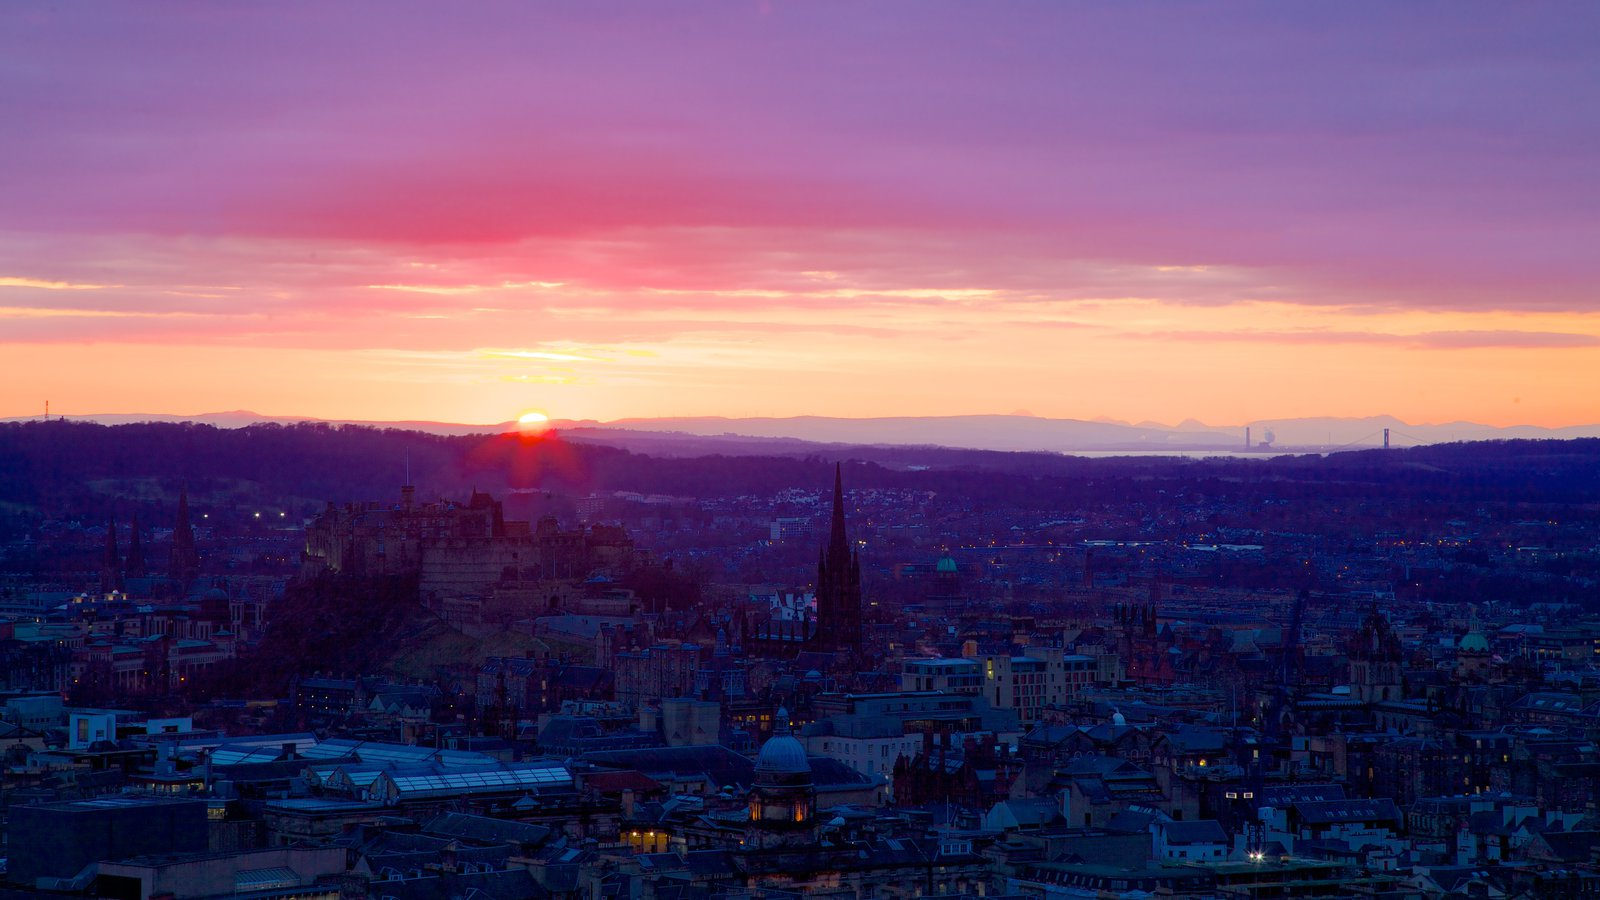 Arthur\'s Seat featuring a city, a sunset and skyline